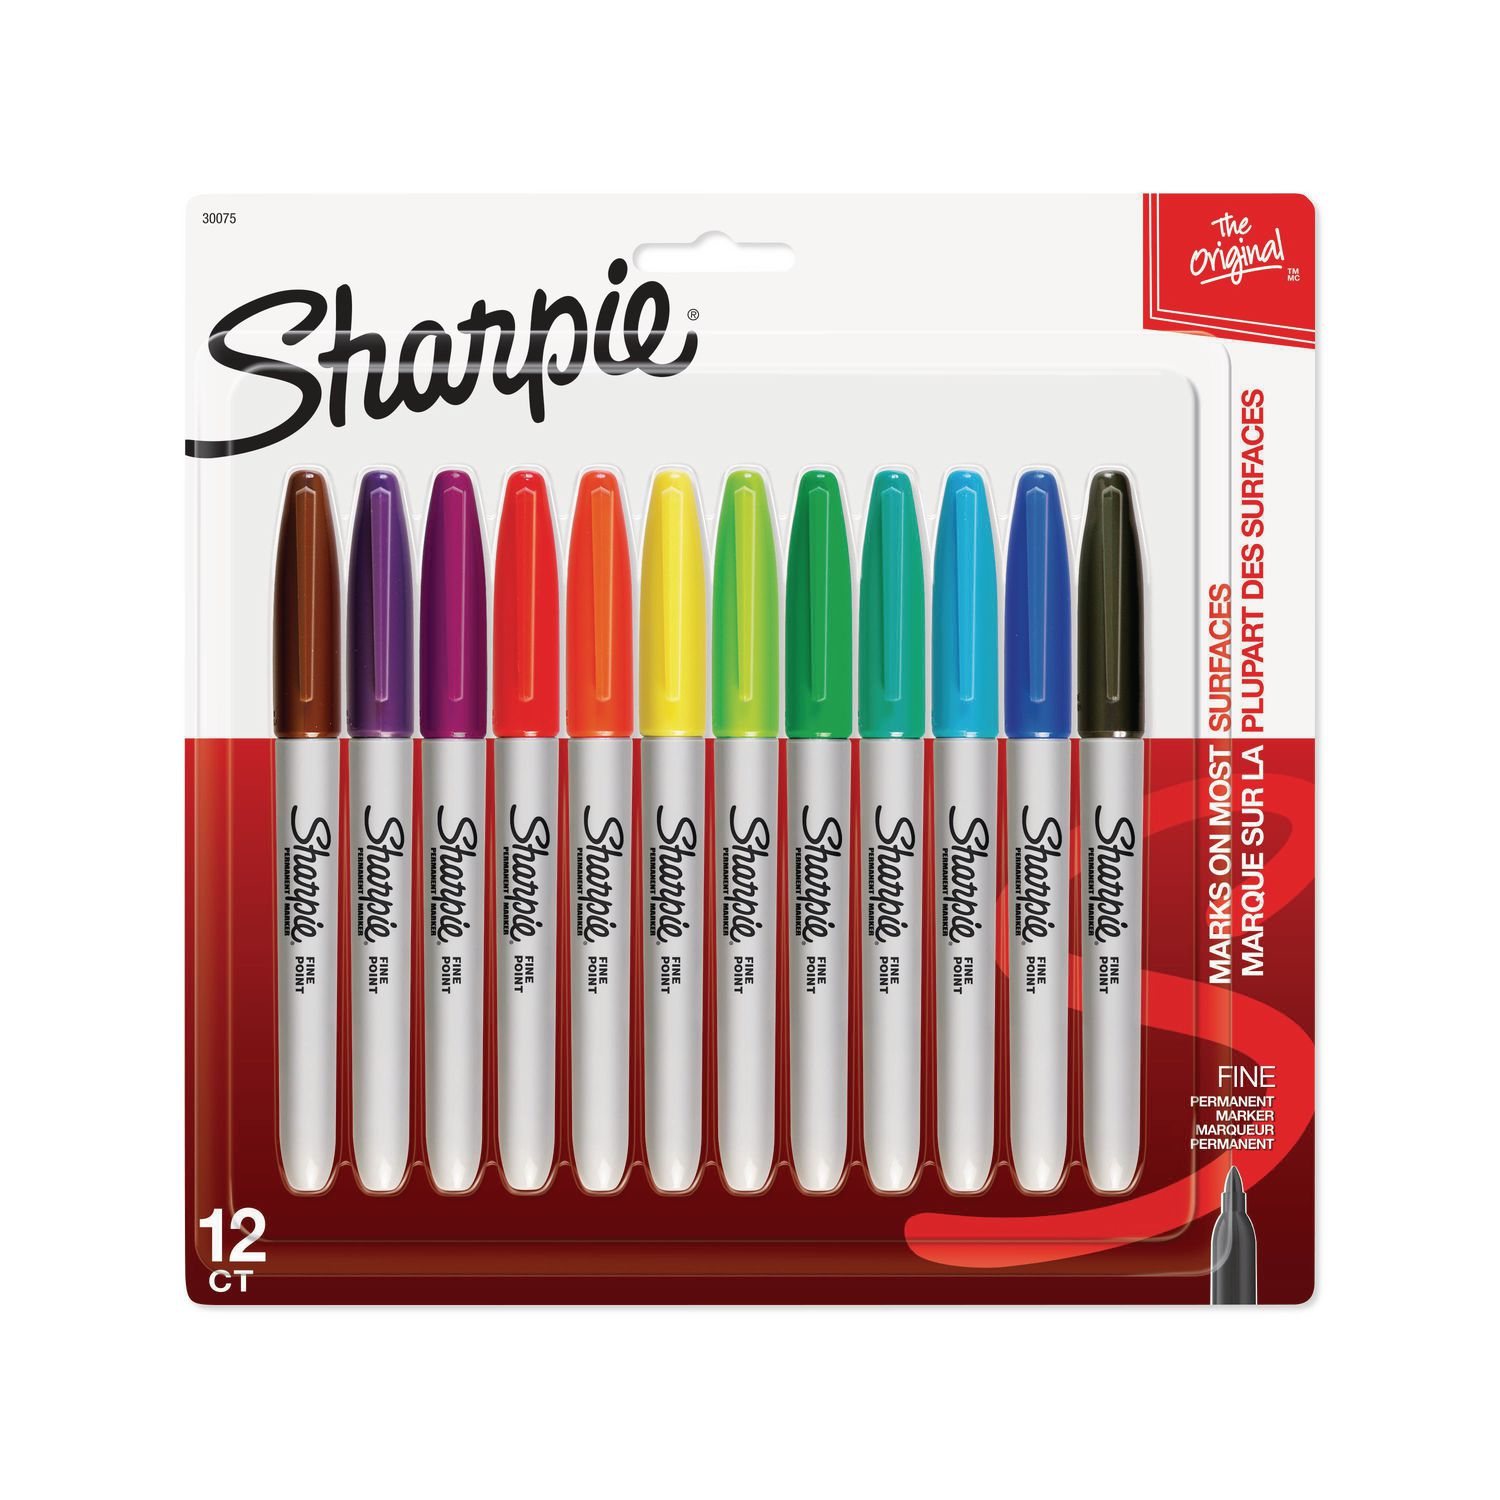 Amazon.com : Sharpie 1758054 Grip Pens, Fine Point, Assorted Colors,  3-Count : Permanent Markers : Office Products